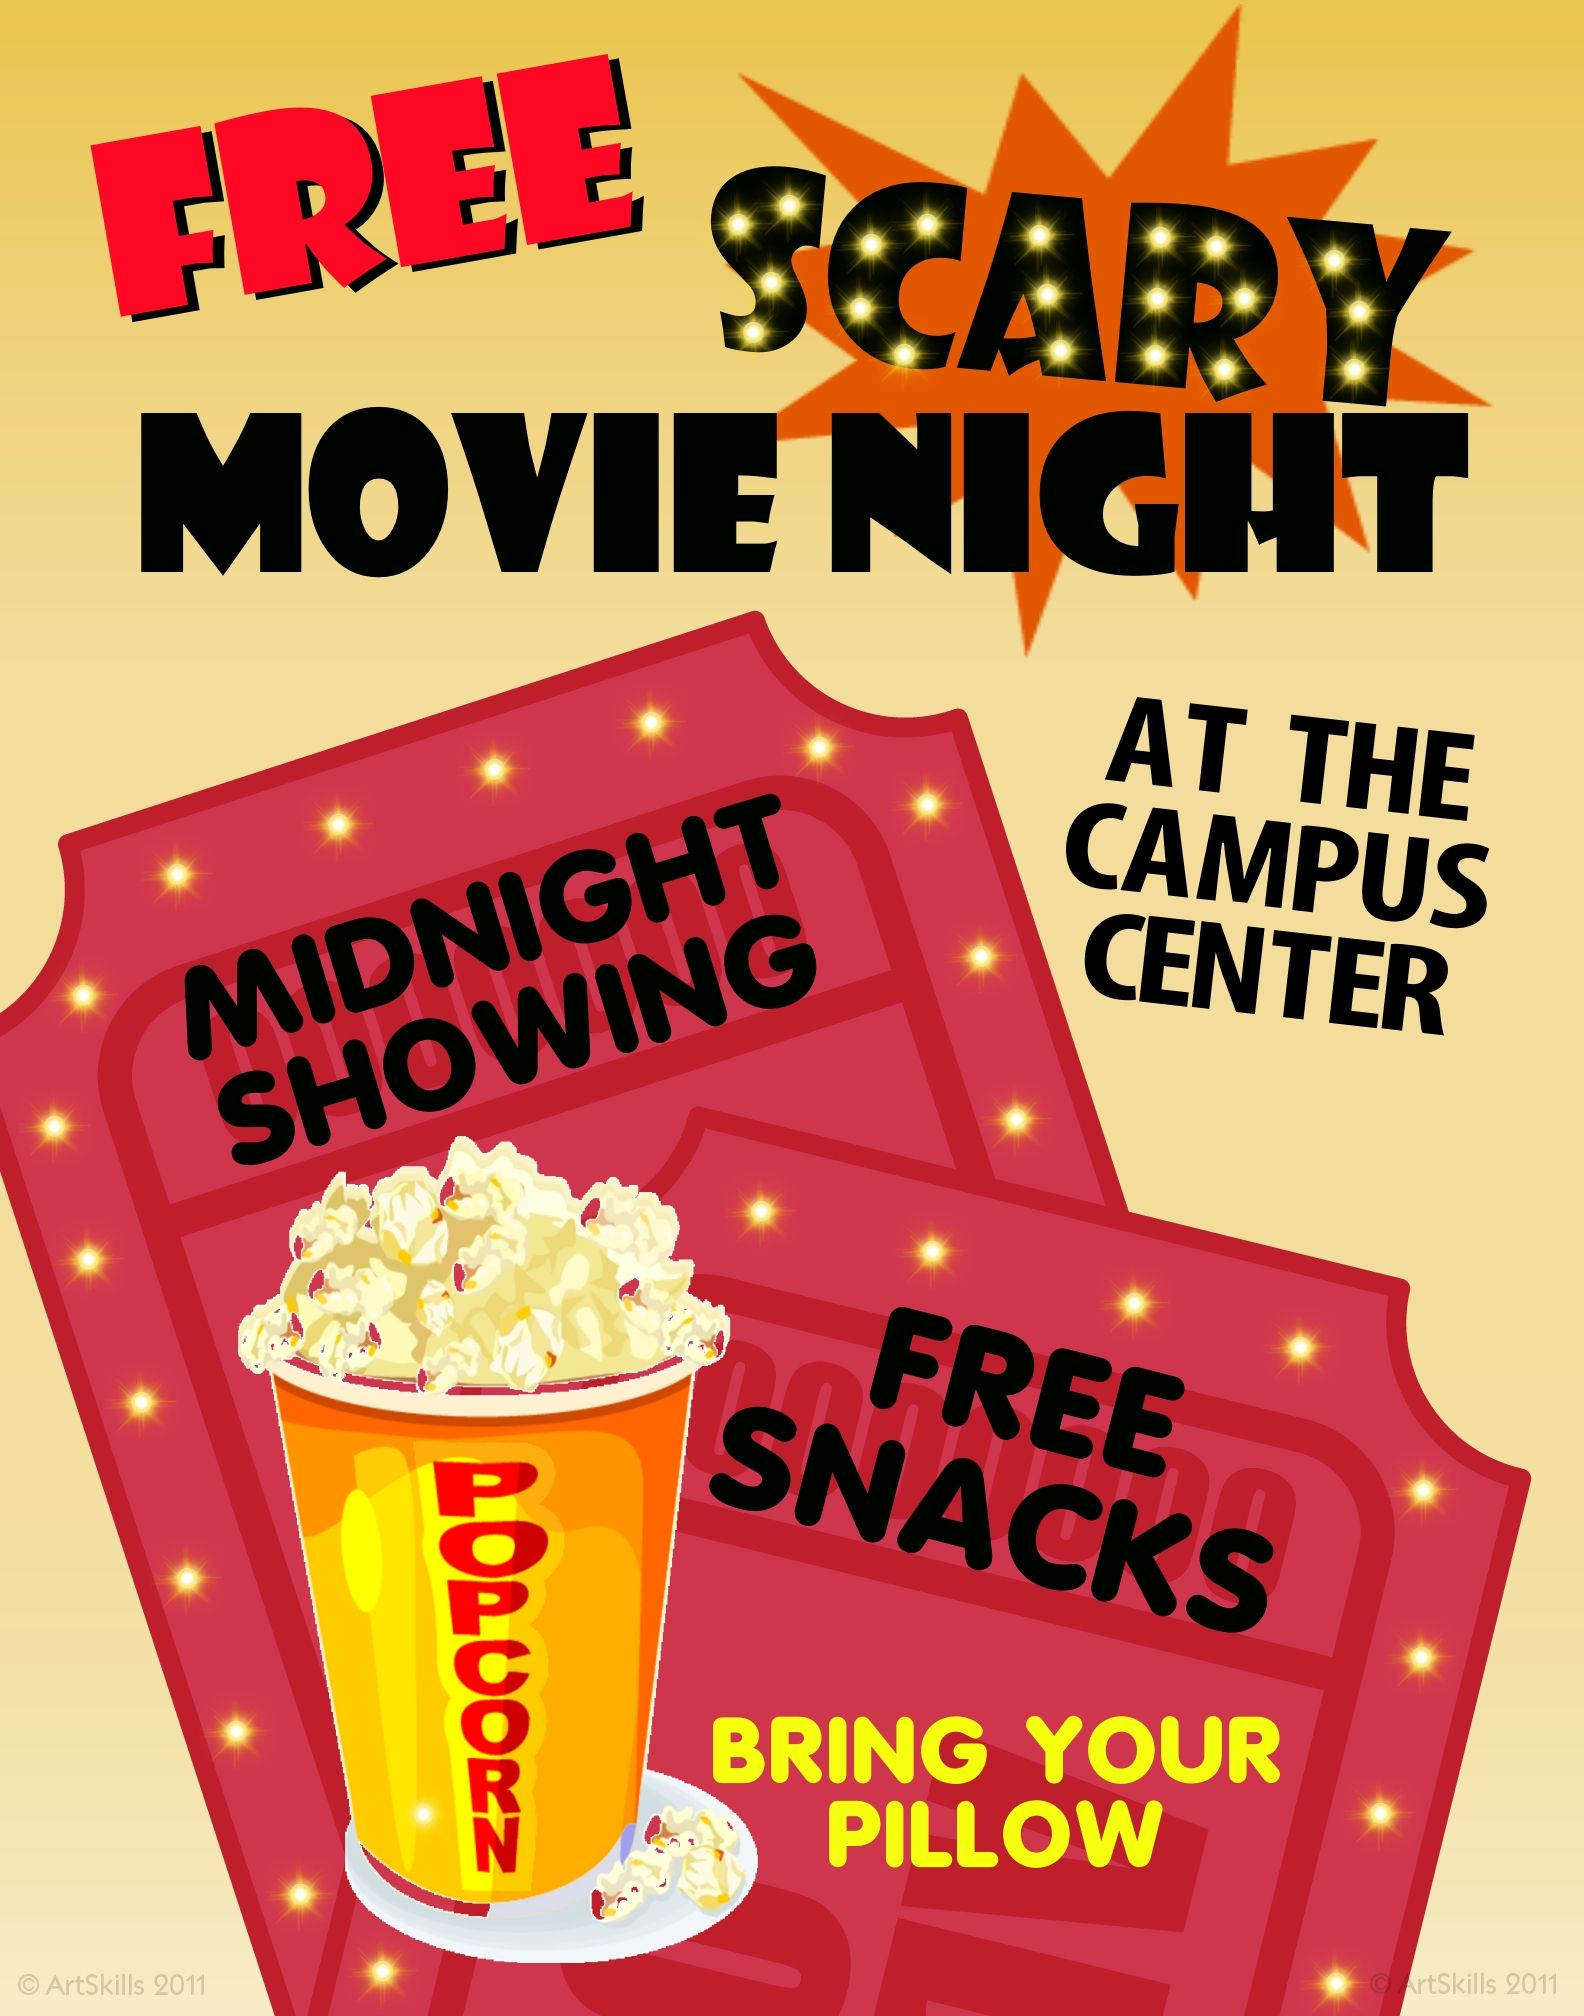 college university | campus event | movie night social poster idea